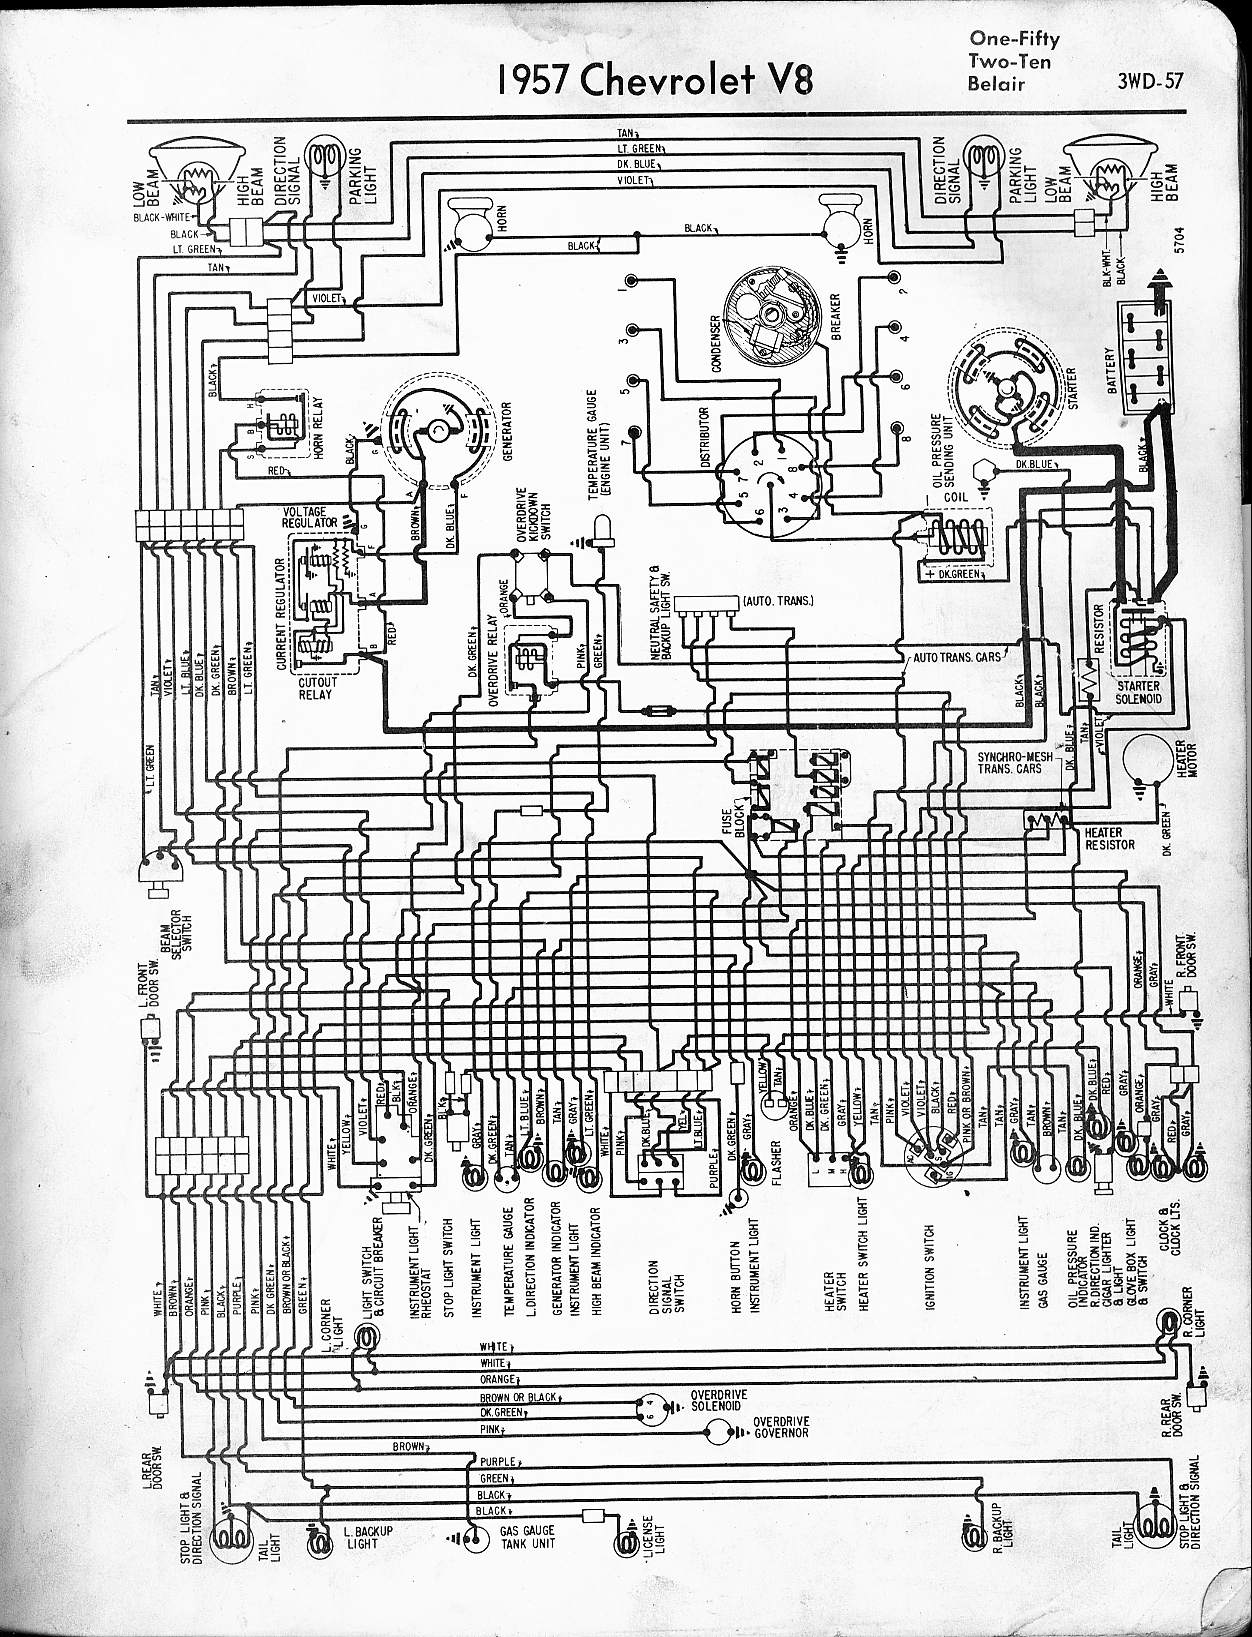 Wiring Diagram 57 Chevy Bel Air Opinions About Wiring Diagram \u2022  Mercury Wiring Harness Diagram 1957 Chevy Wiring Harness Diagram